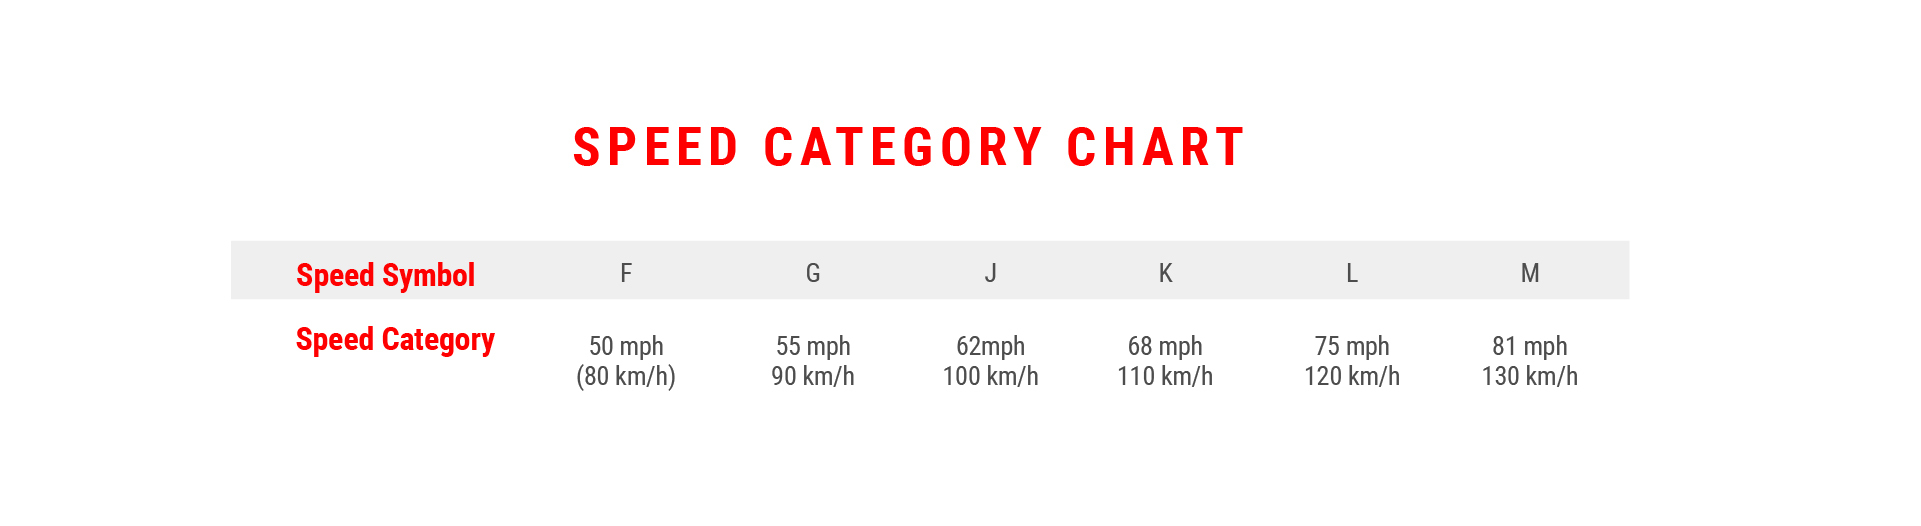 Speed Category